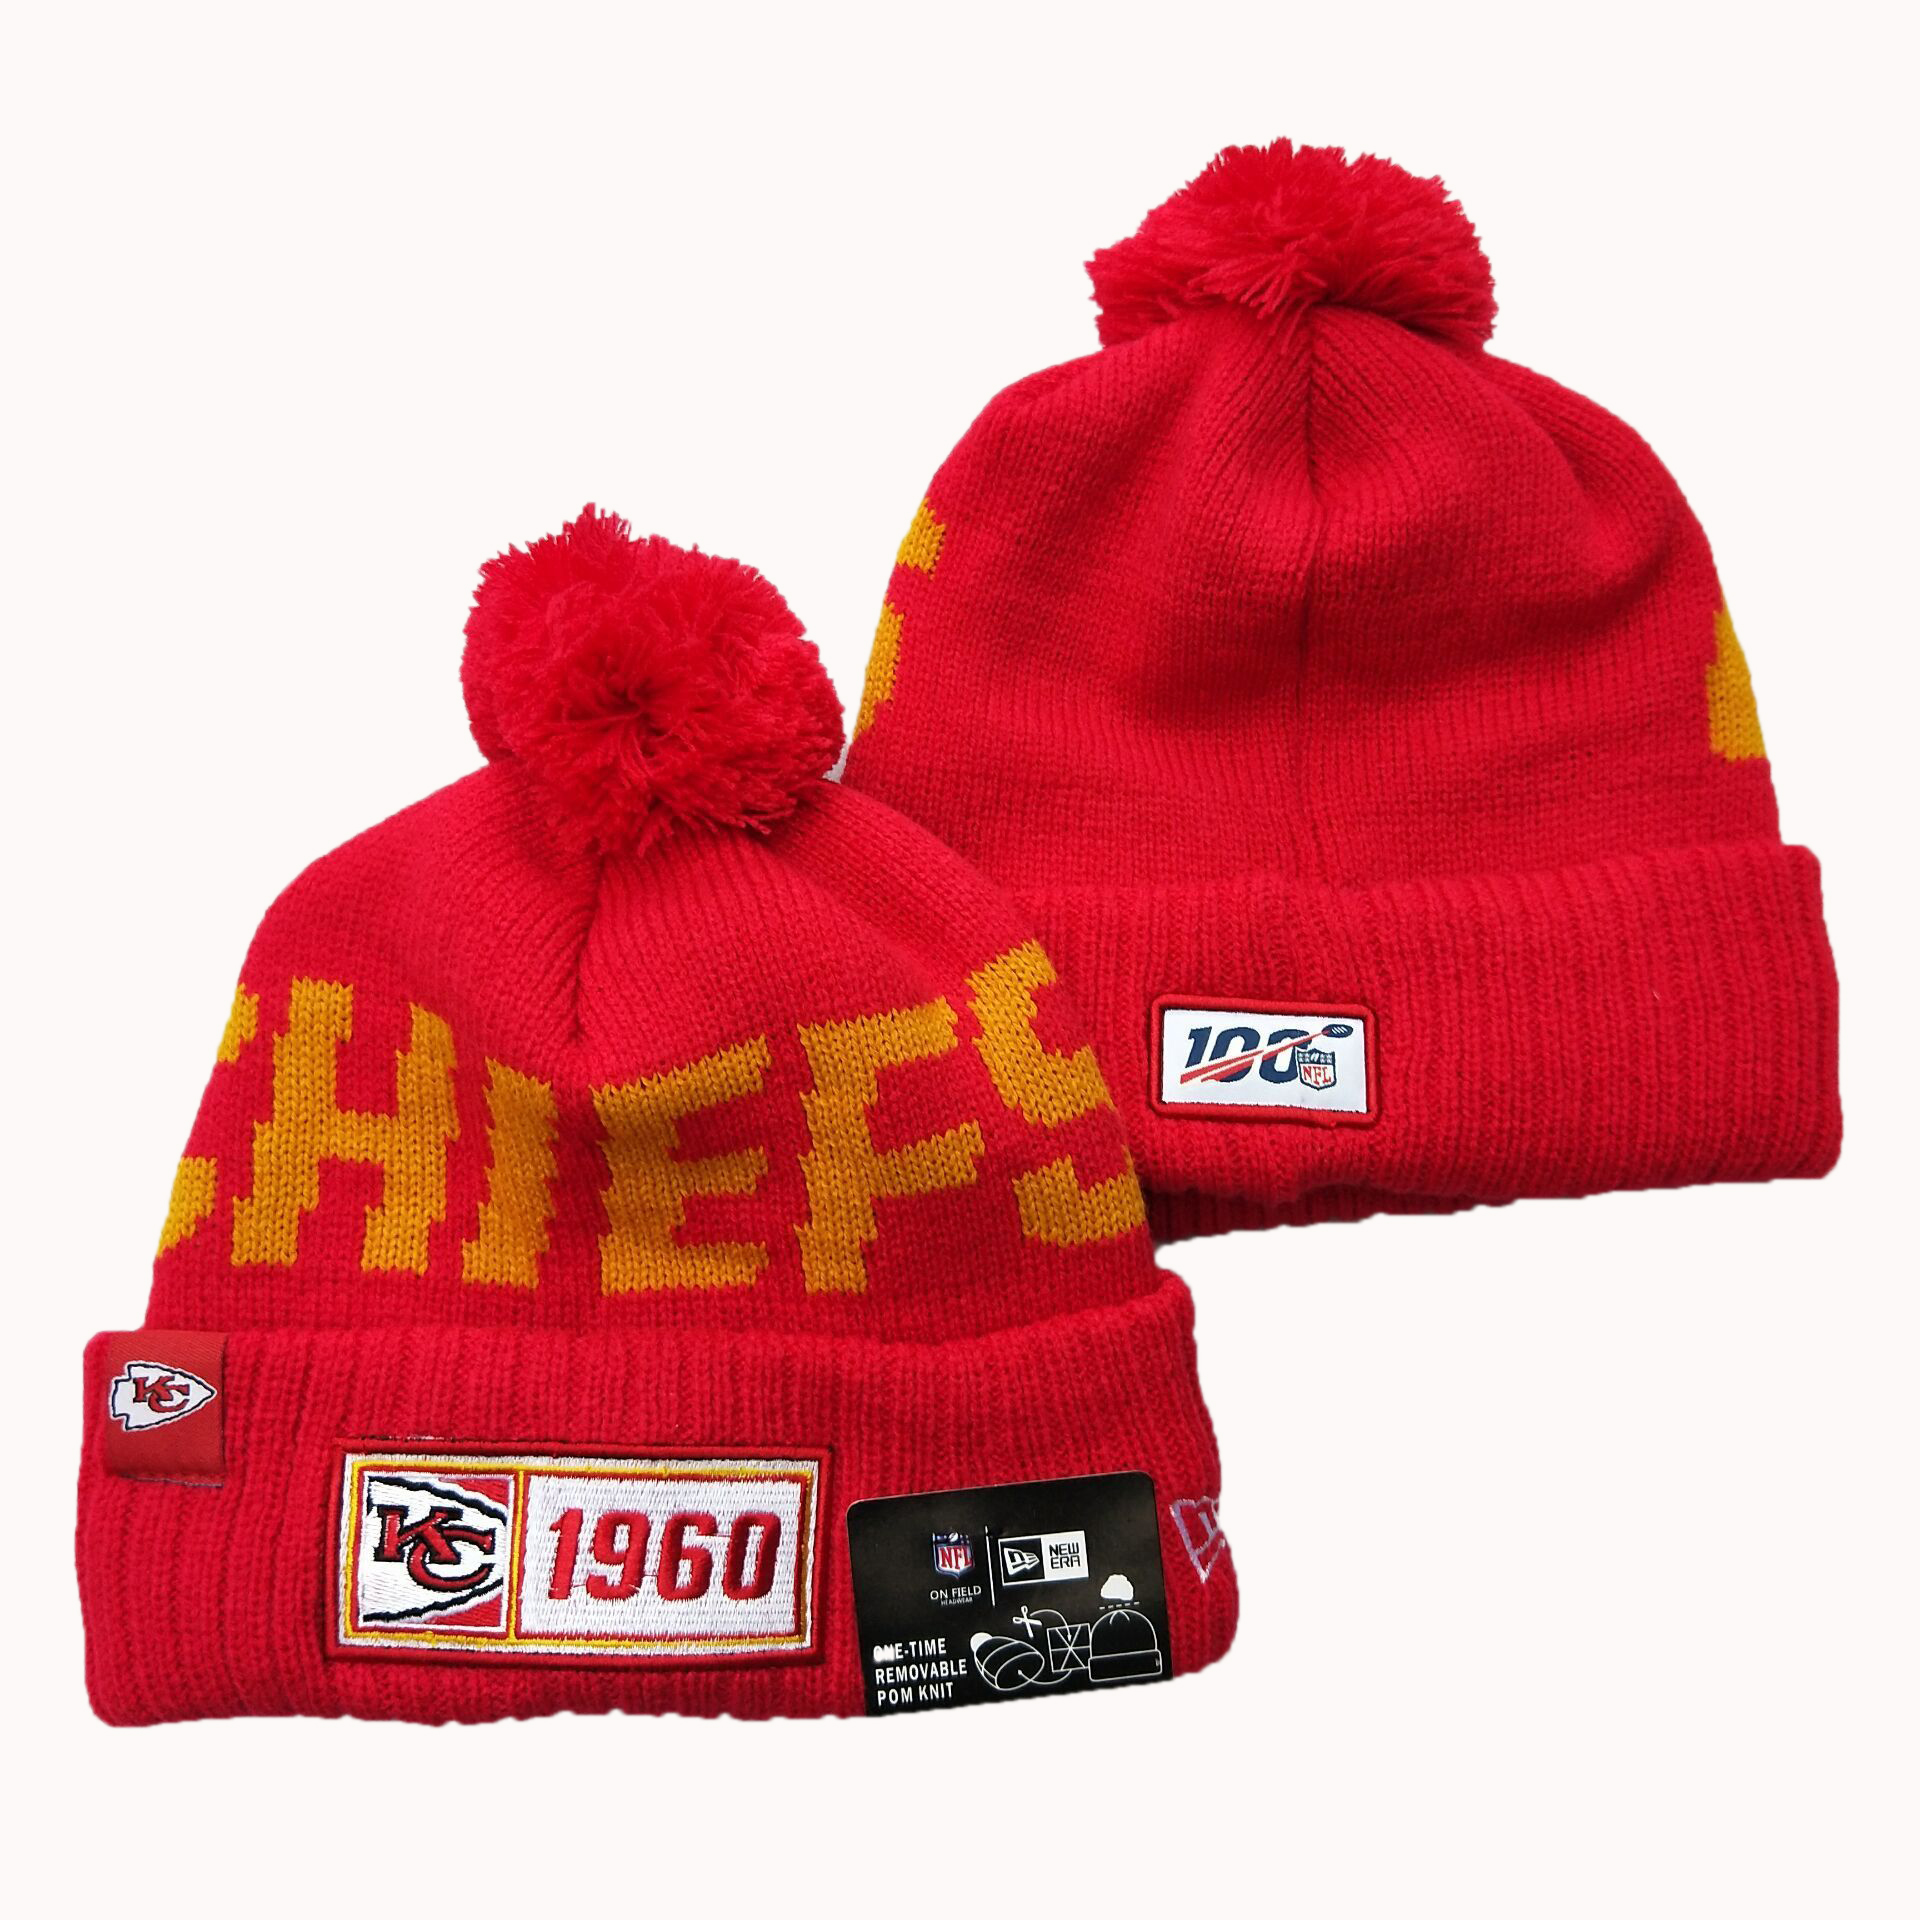 Kansas City Chiefs Knit Hats 058